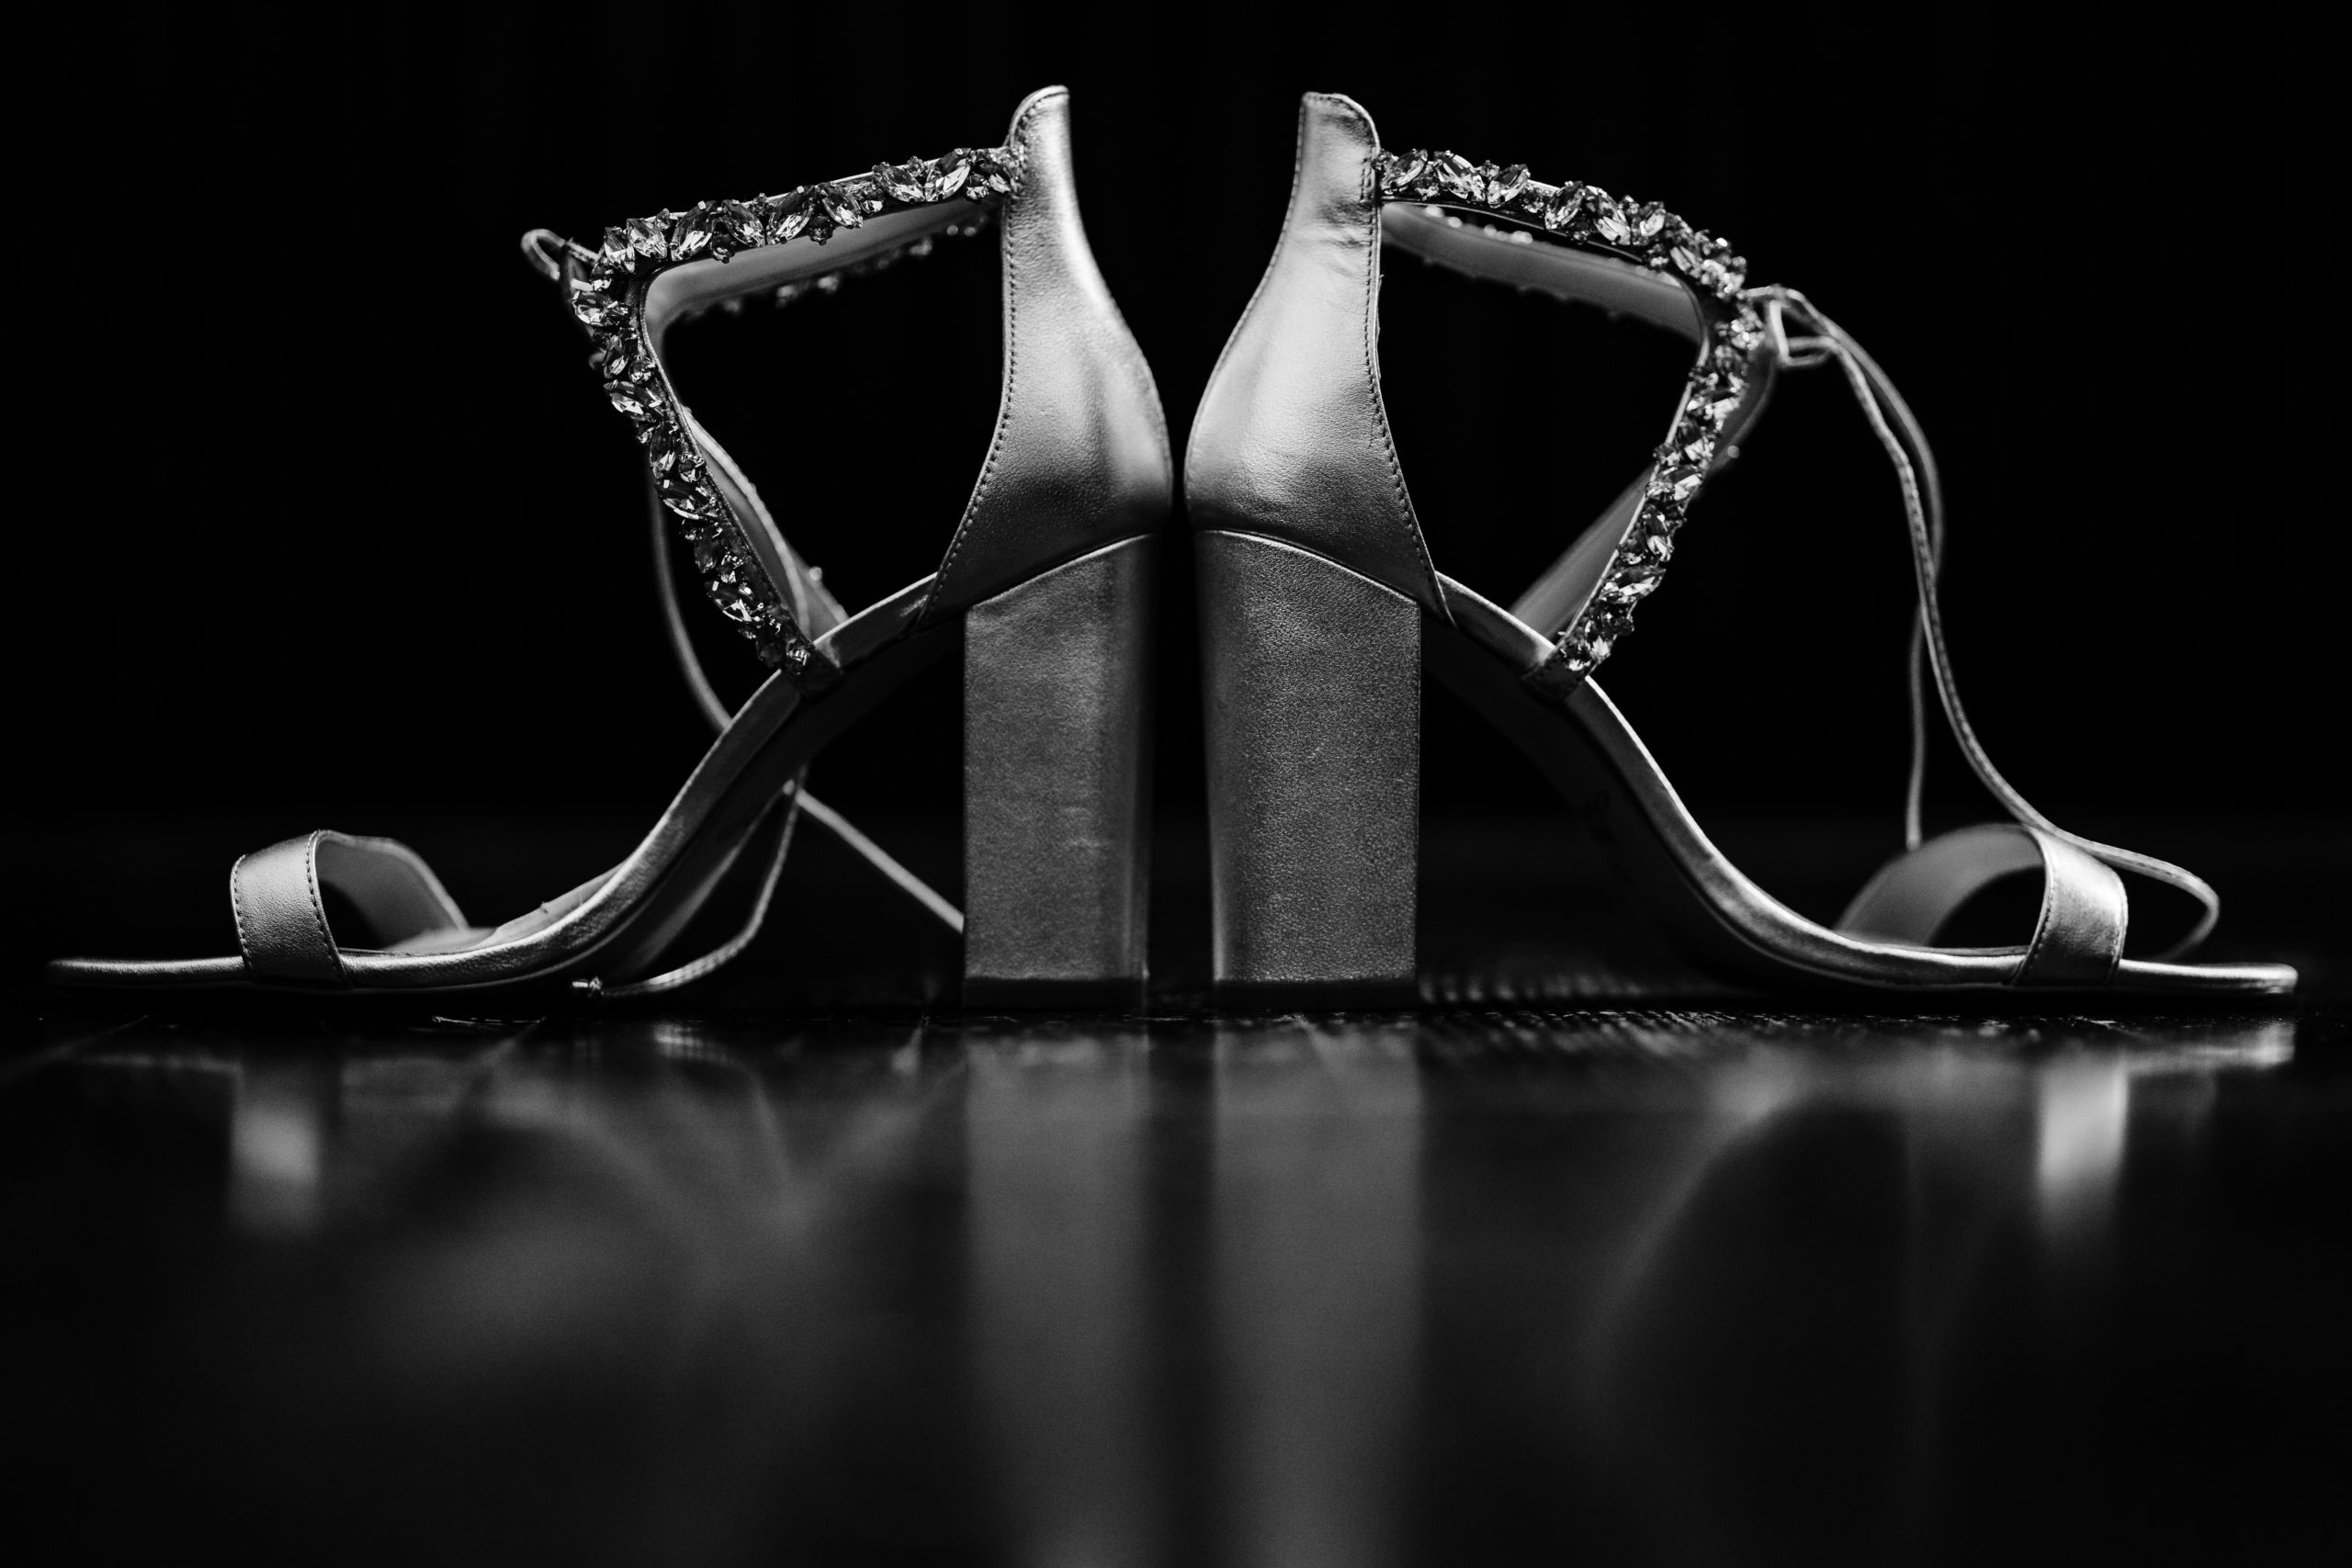 Black and White Wedding Shoes details